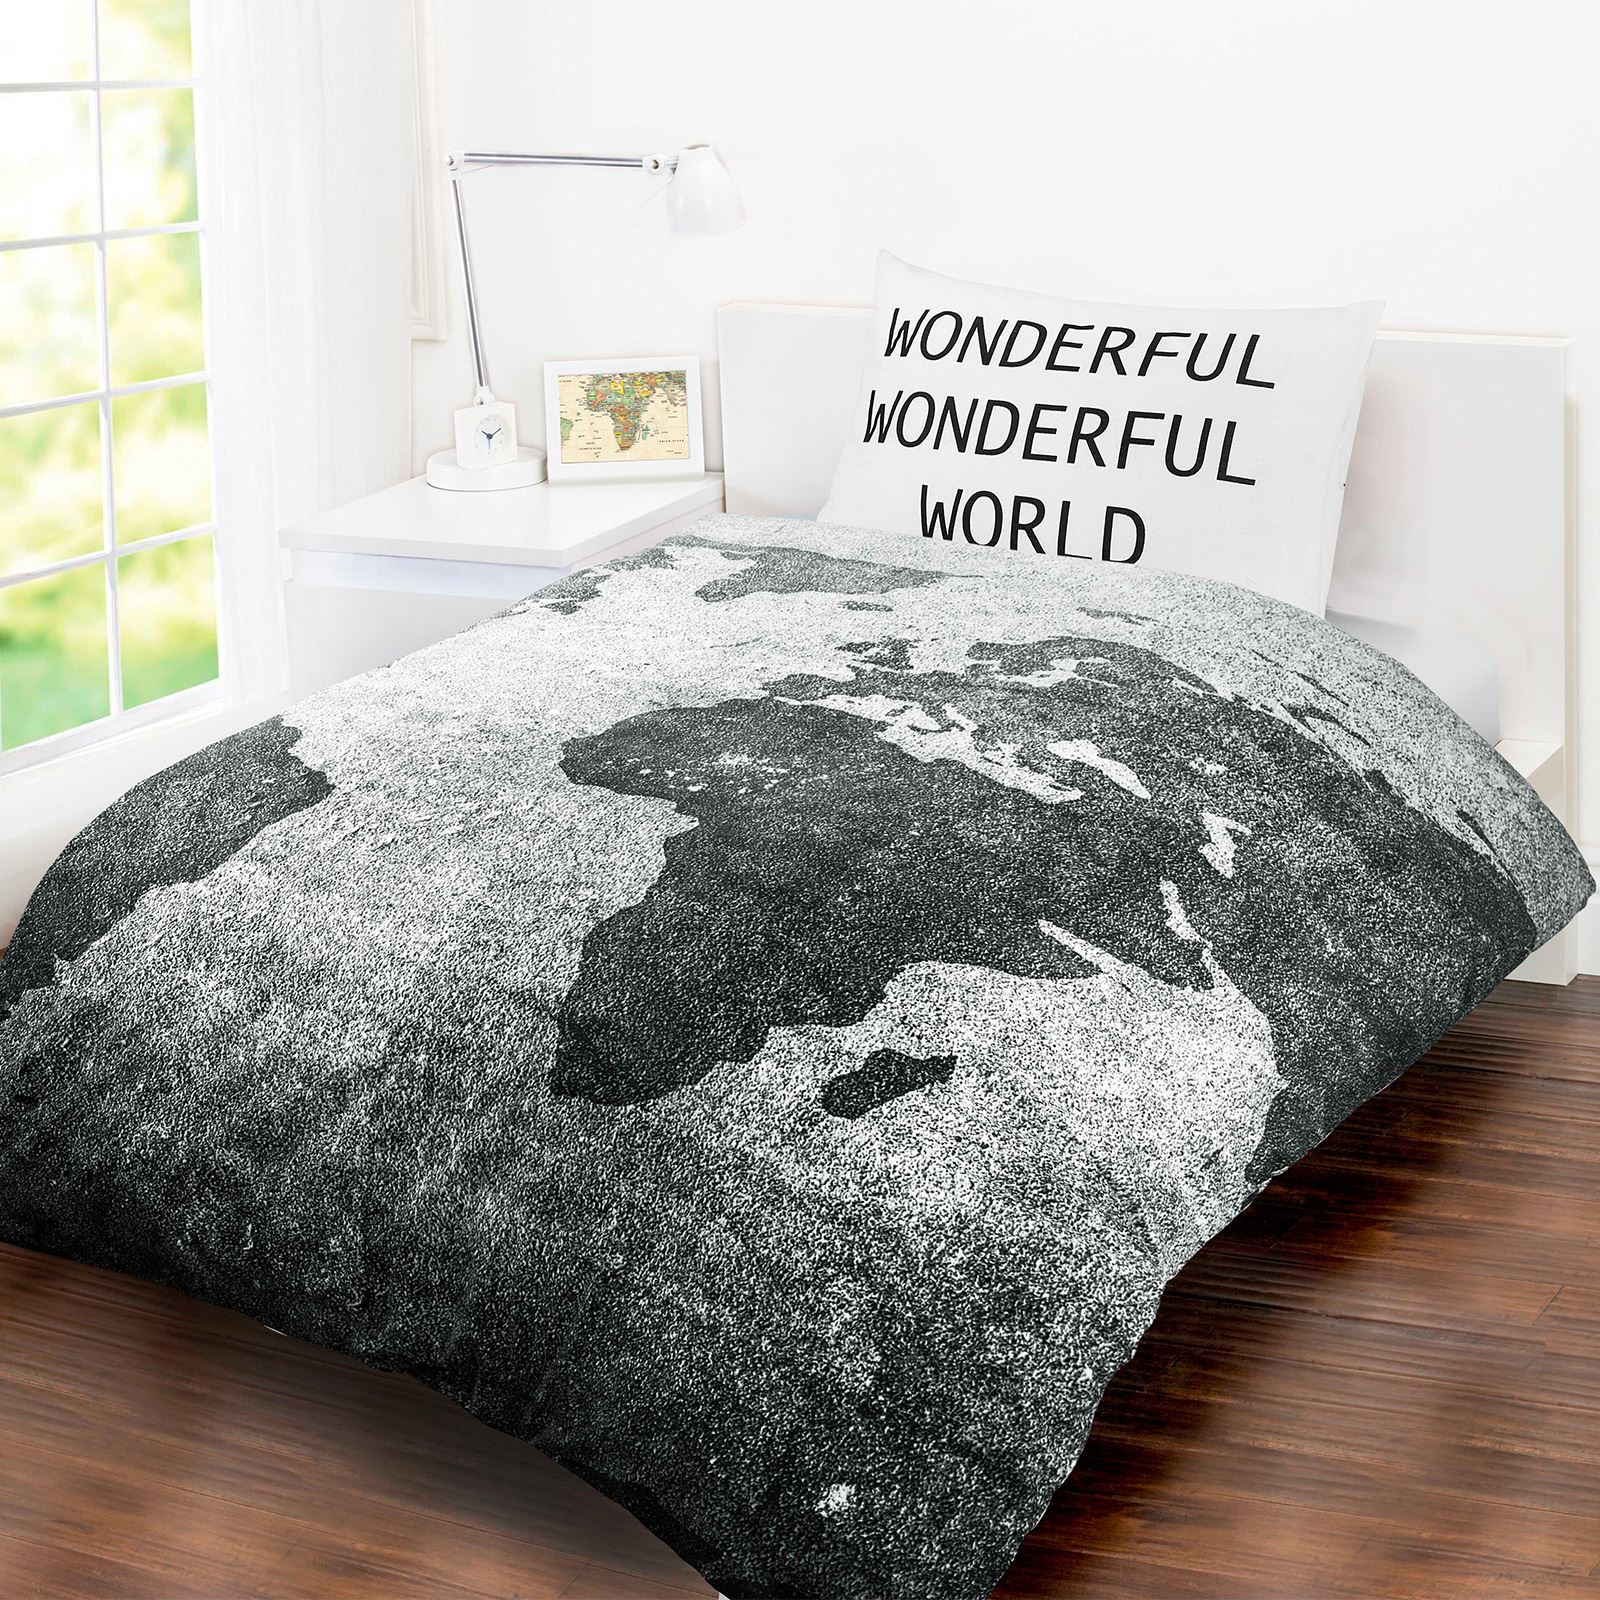 Wonderful world map grey white single bed quilt duvet cover set wonderful world map grey white single bed quilt duvet cover set gumiabroncs Choice Image